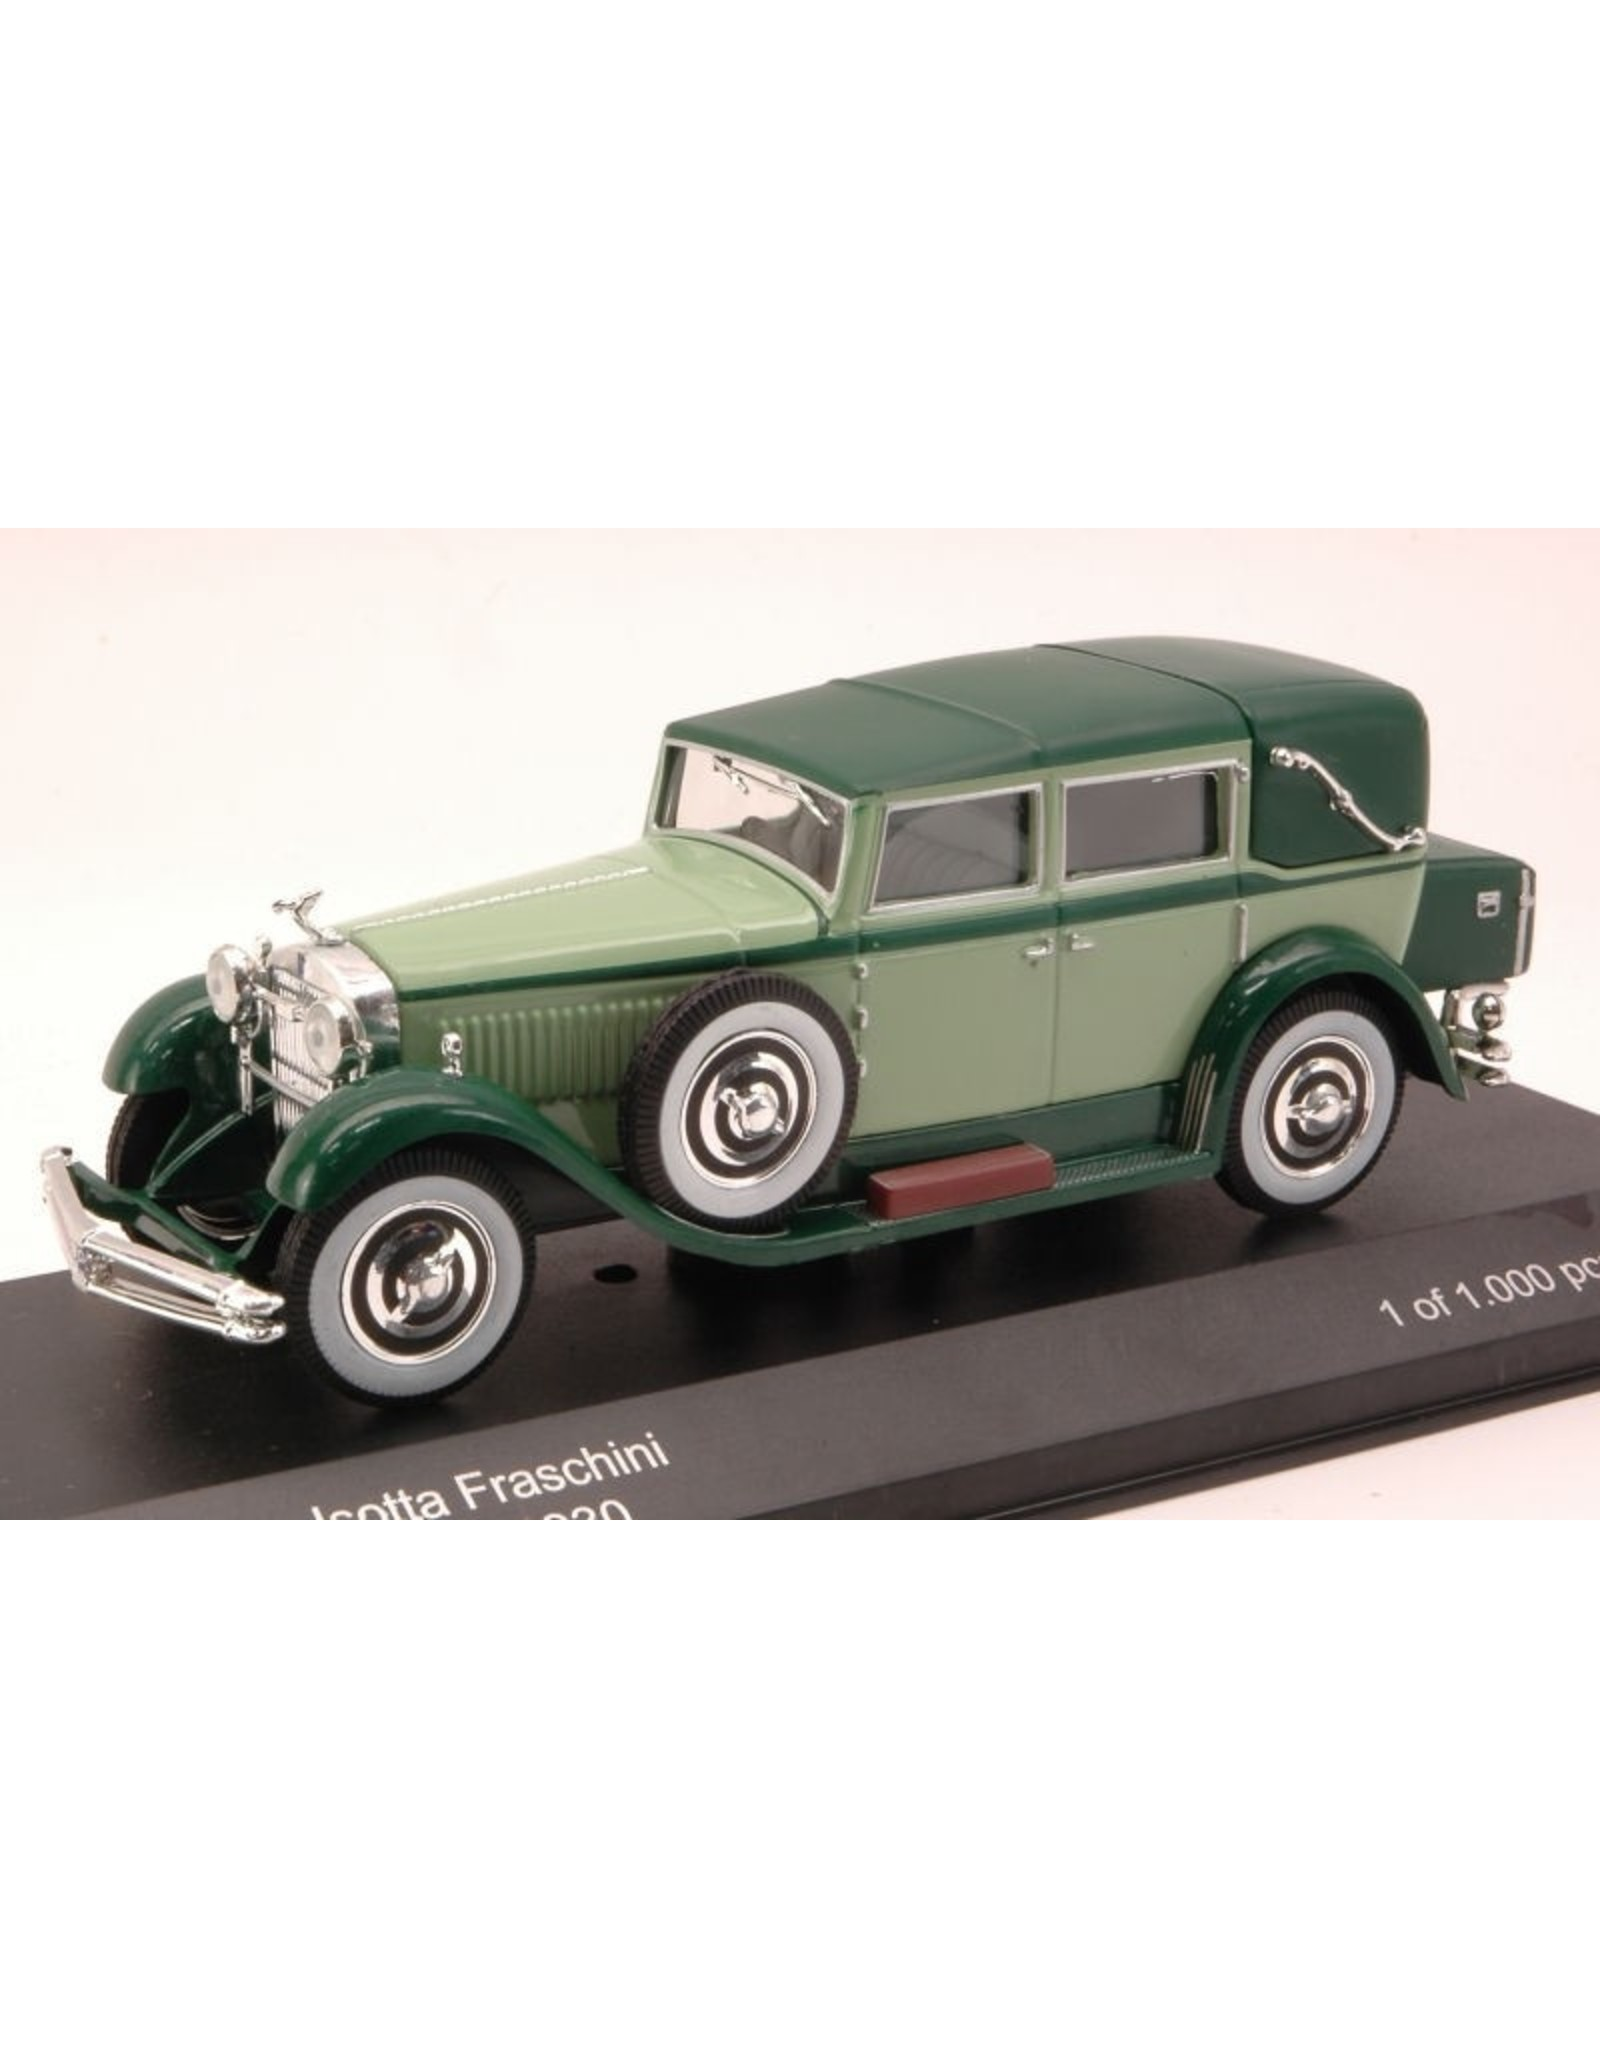 Isotto Franchini & Co ISOTTO FRANCHINI TIPO 8(clear green/dark green)1930